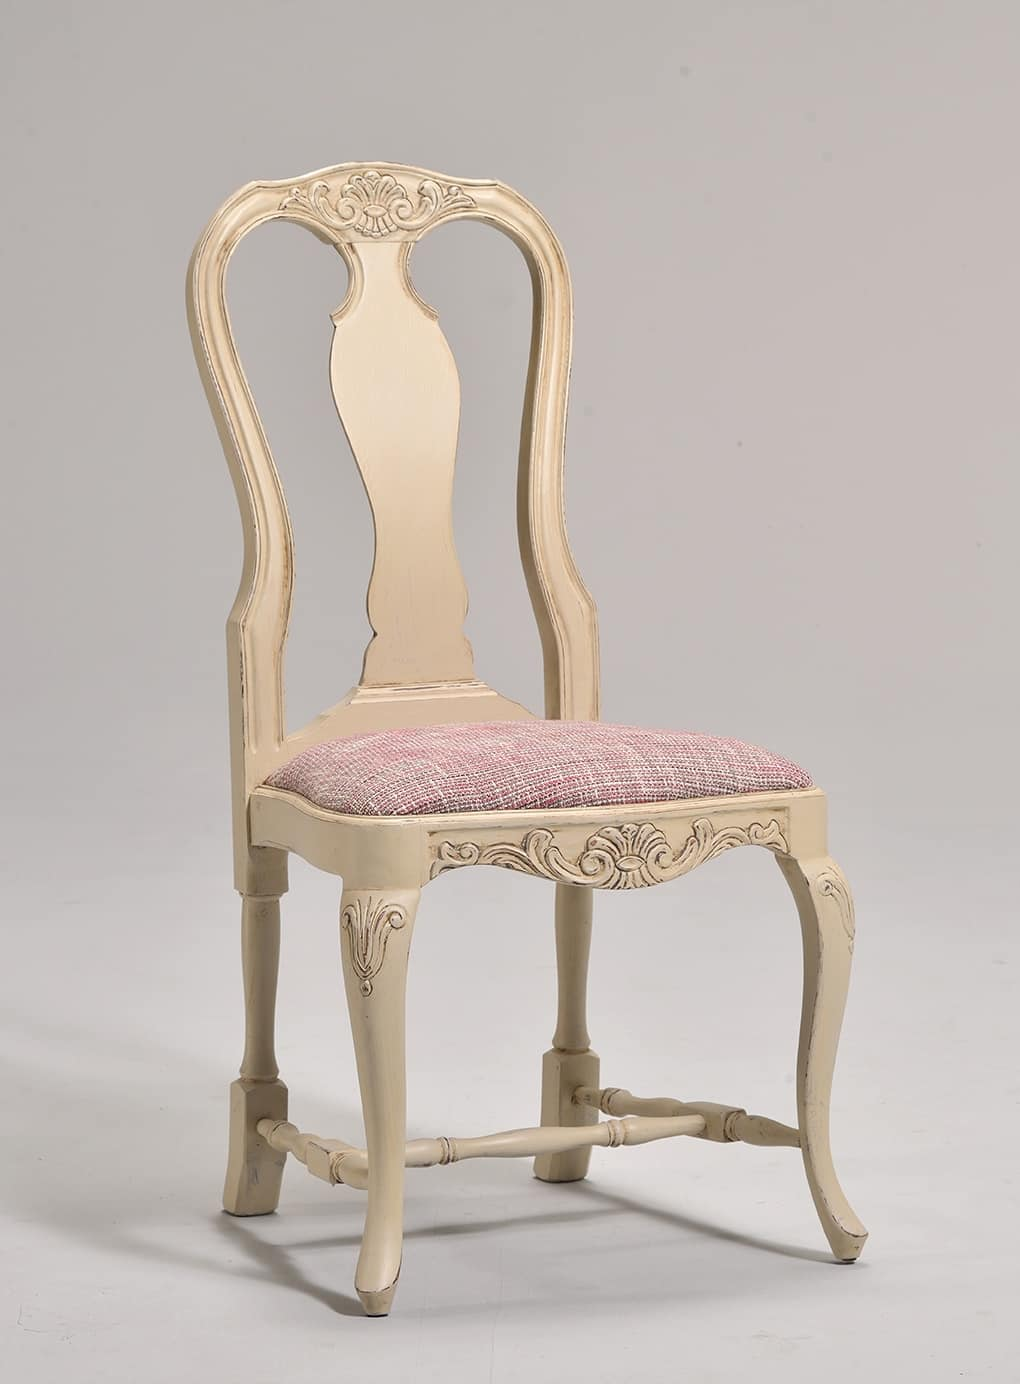 MALENE chair 8124S, Gustavian style chair with padded seat